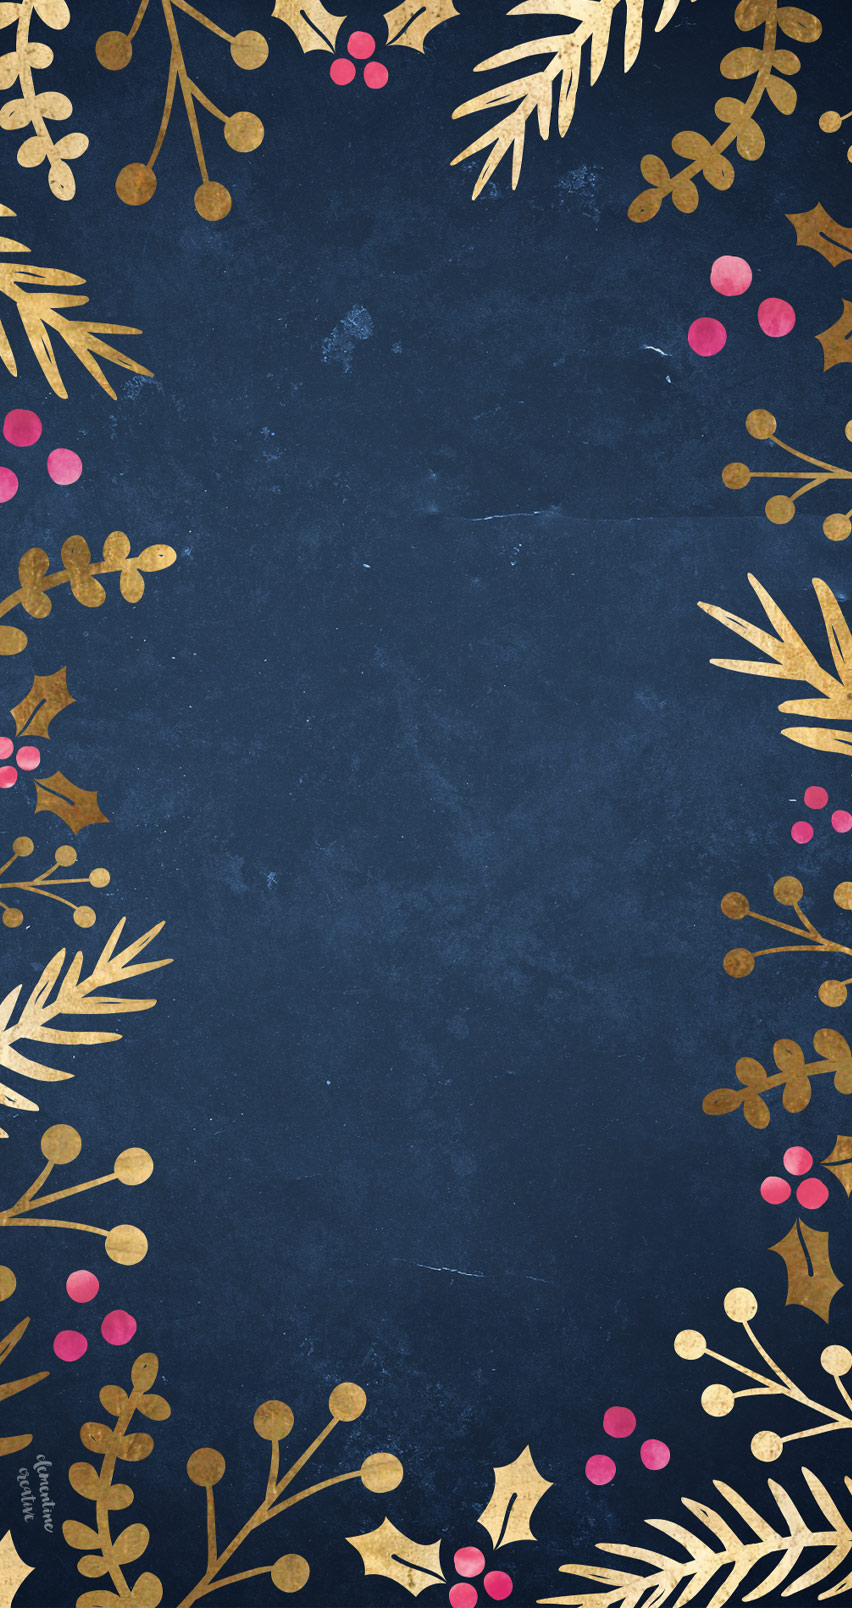 Free Festive Wallpaper Gold Foil Foliage